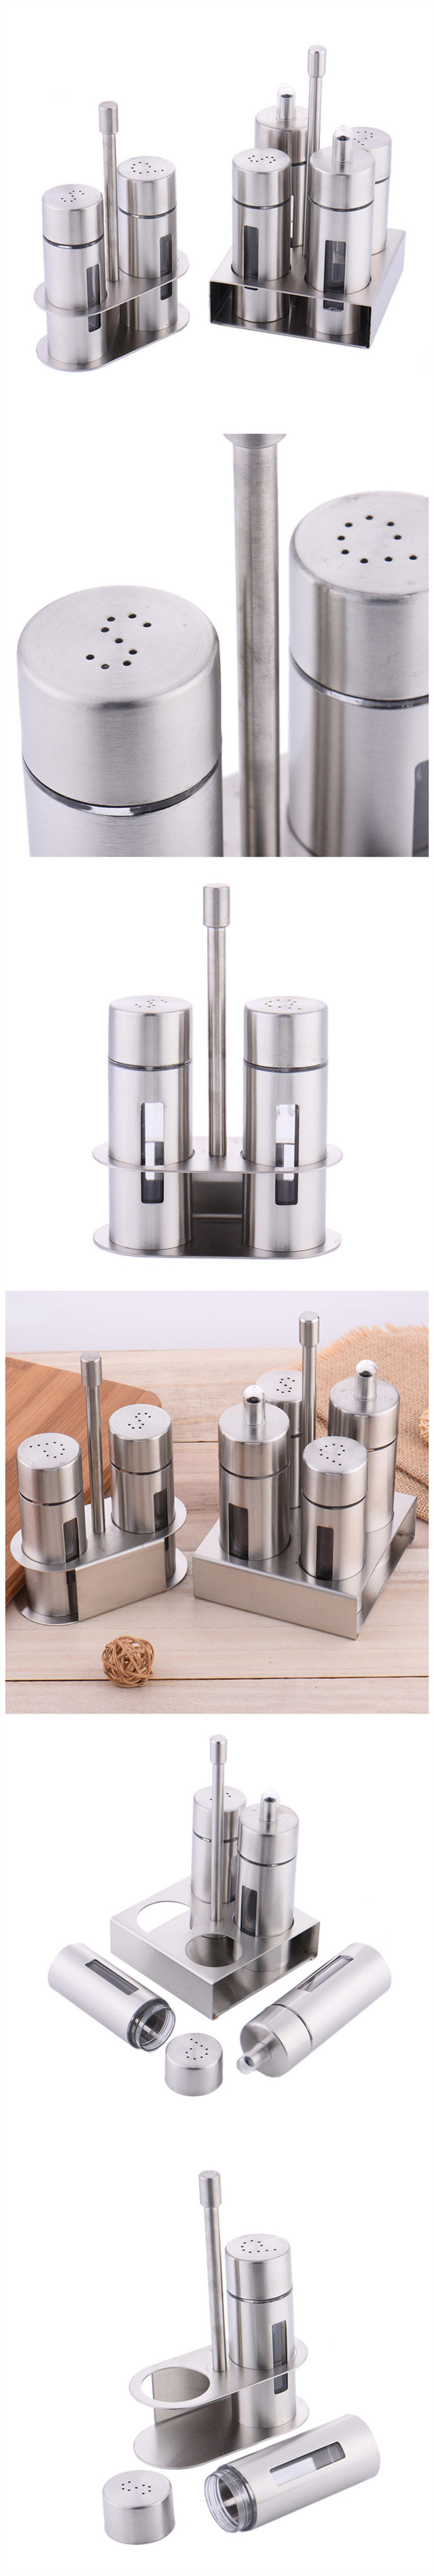 Bruiloft Gunsten Zout en Peper Spice Mill Shaker Set